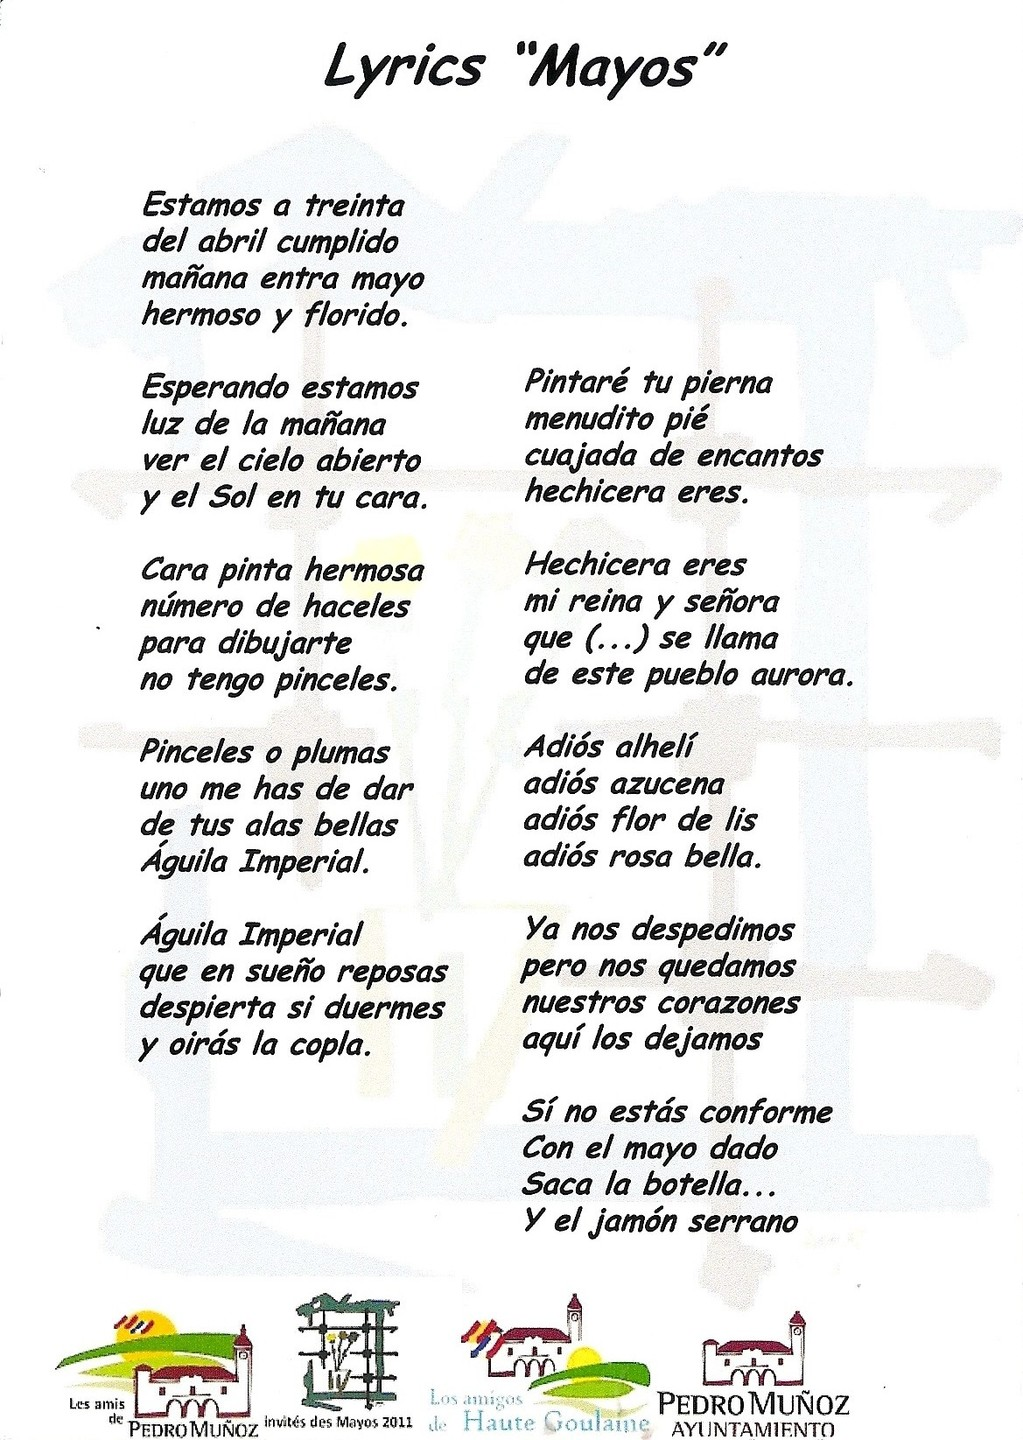 Paroles de la chanson du Mayo Manchego